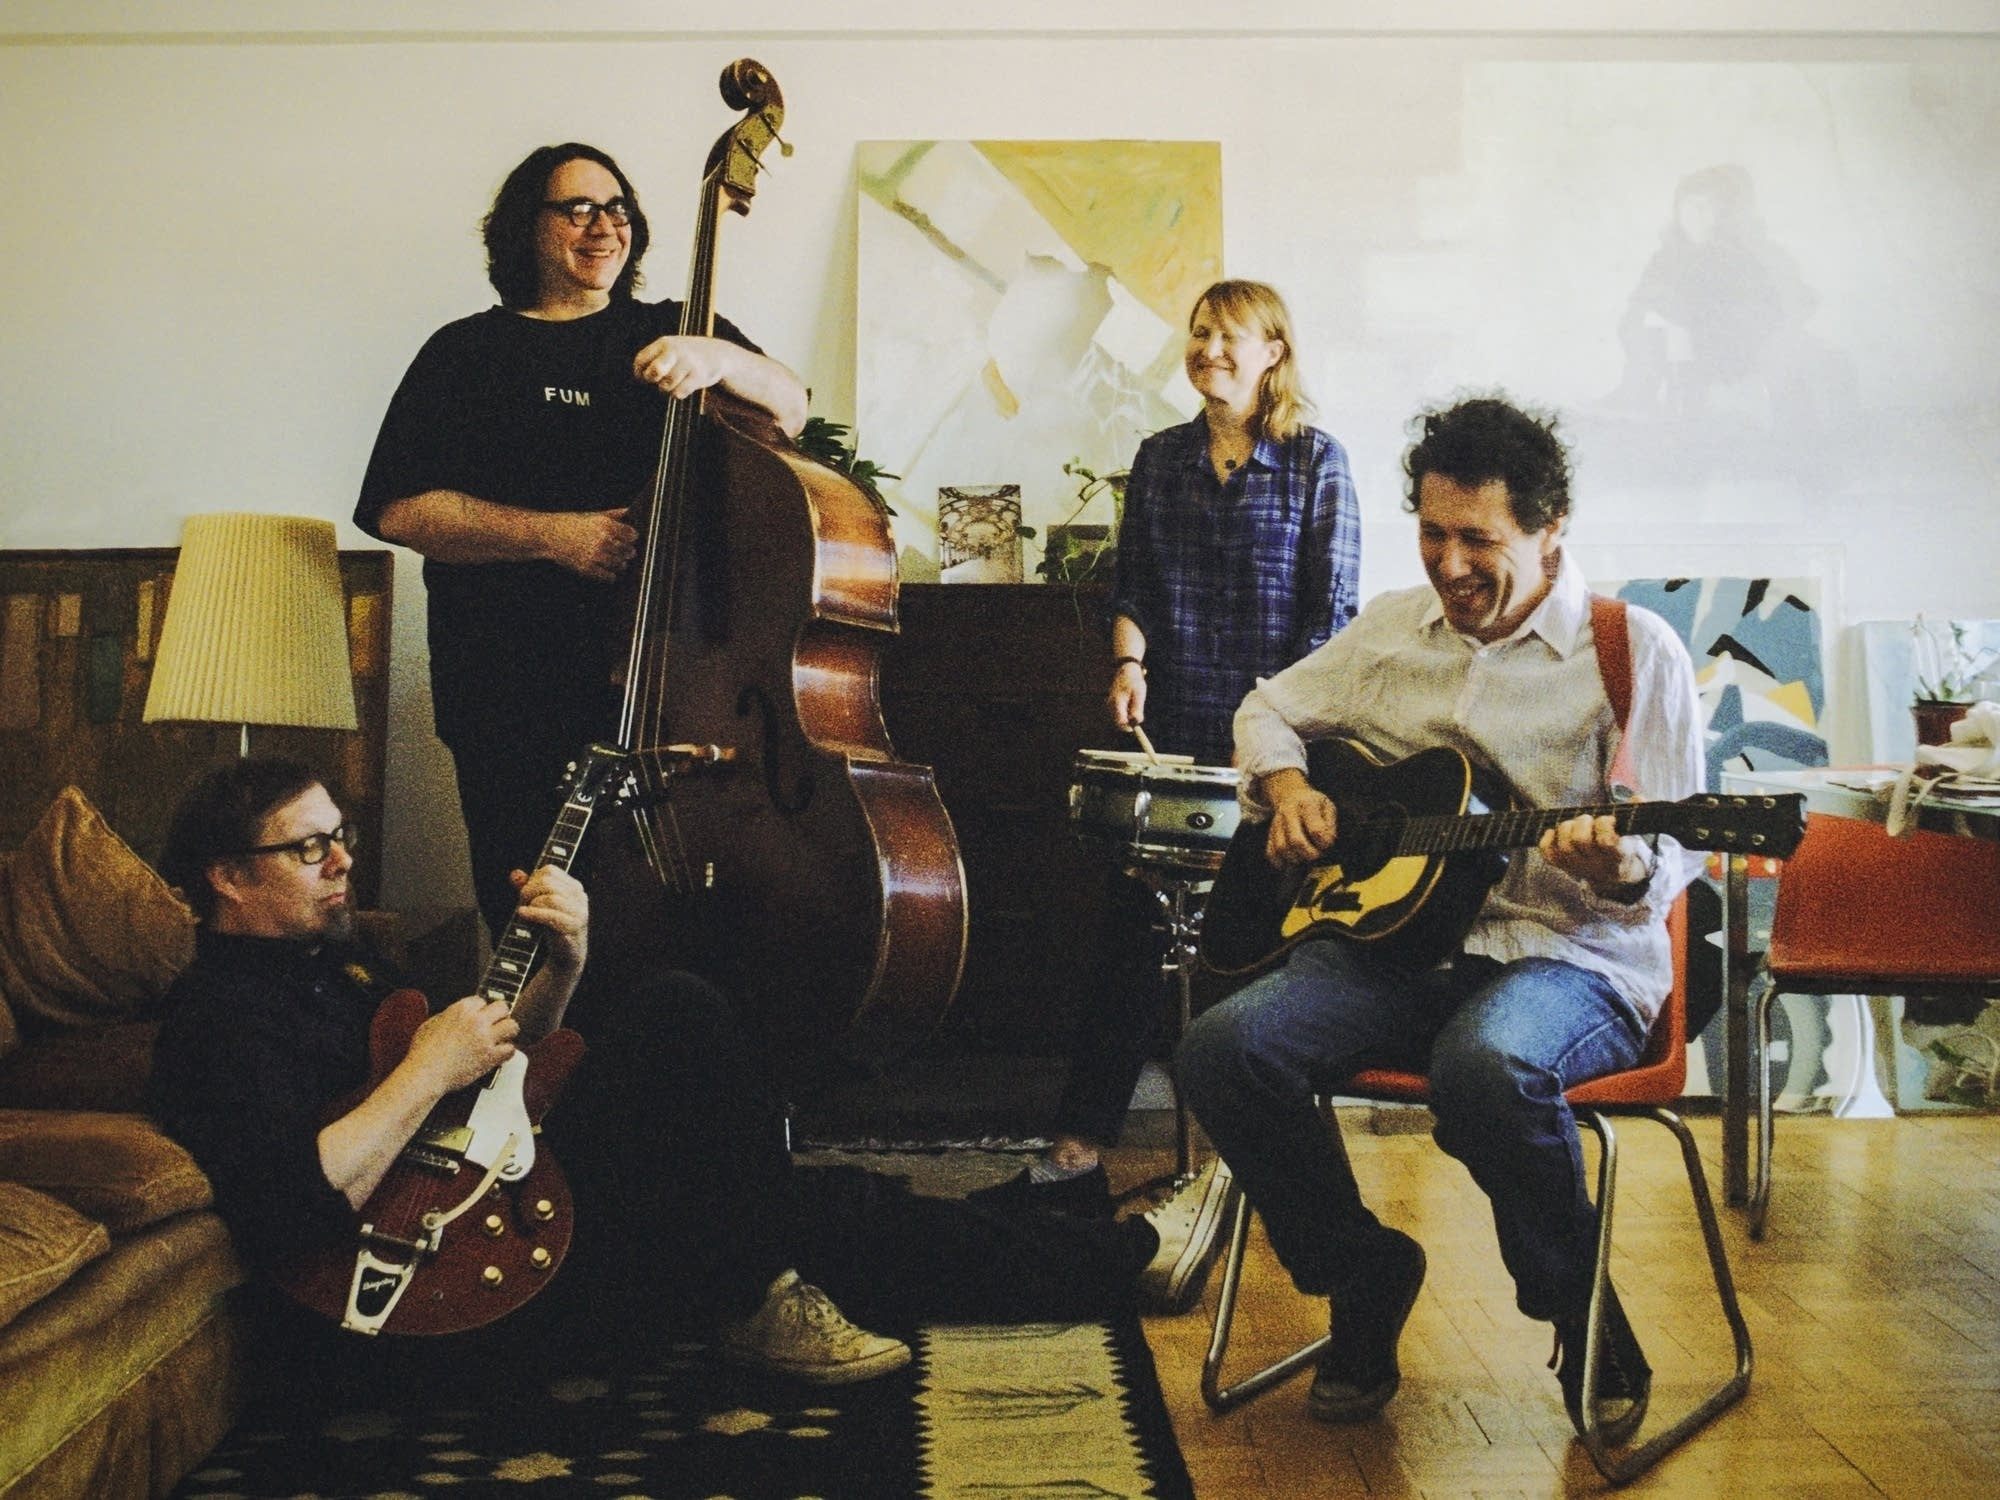 Dinner Party Music yo la tengo cook up a cover-rich dinner party soundtrack | the current